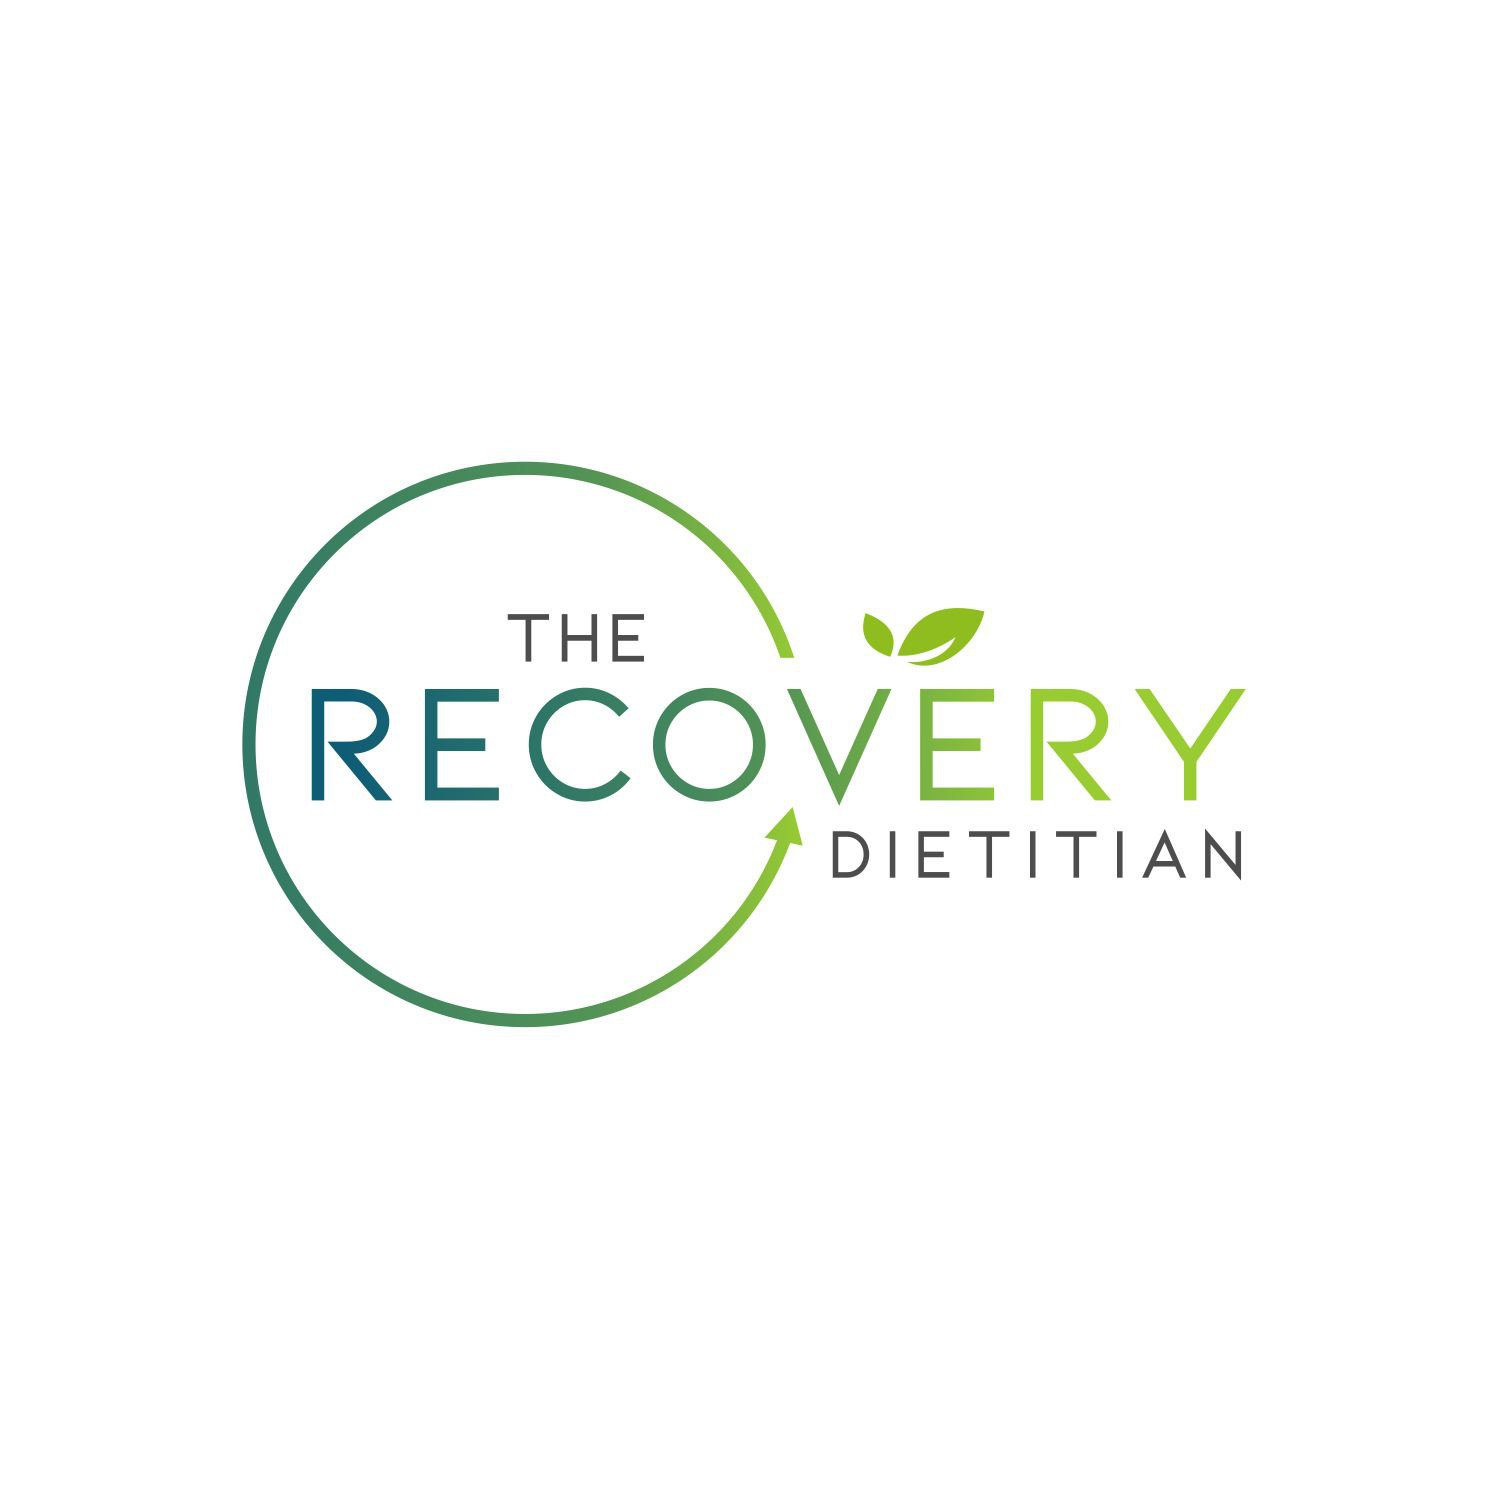 Dietitian consulting for people in recovery from substance abuse and eating disorders